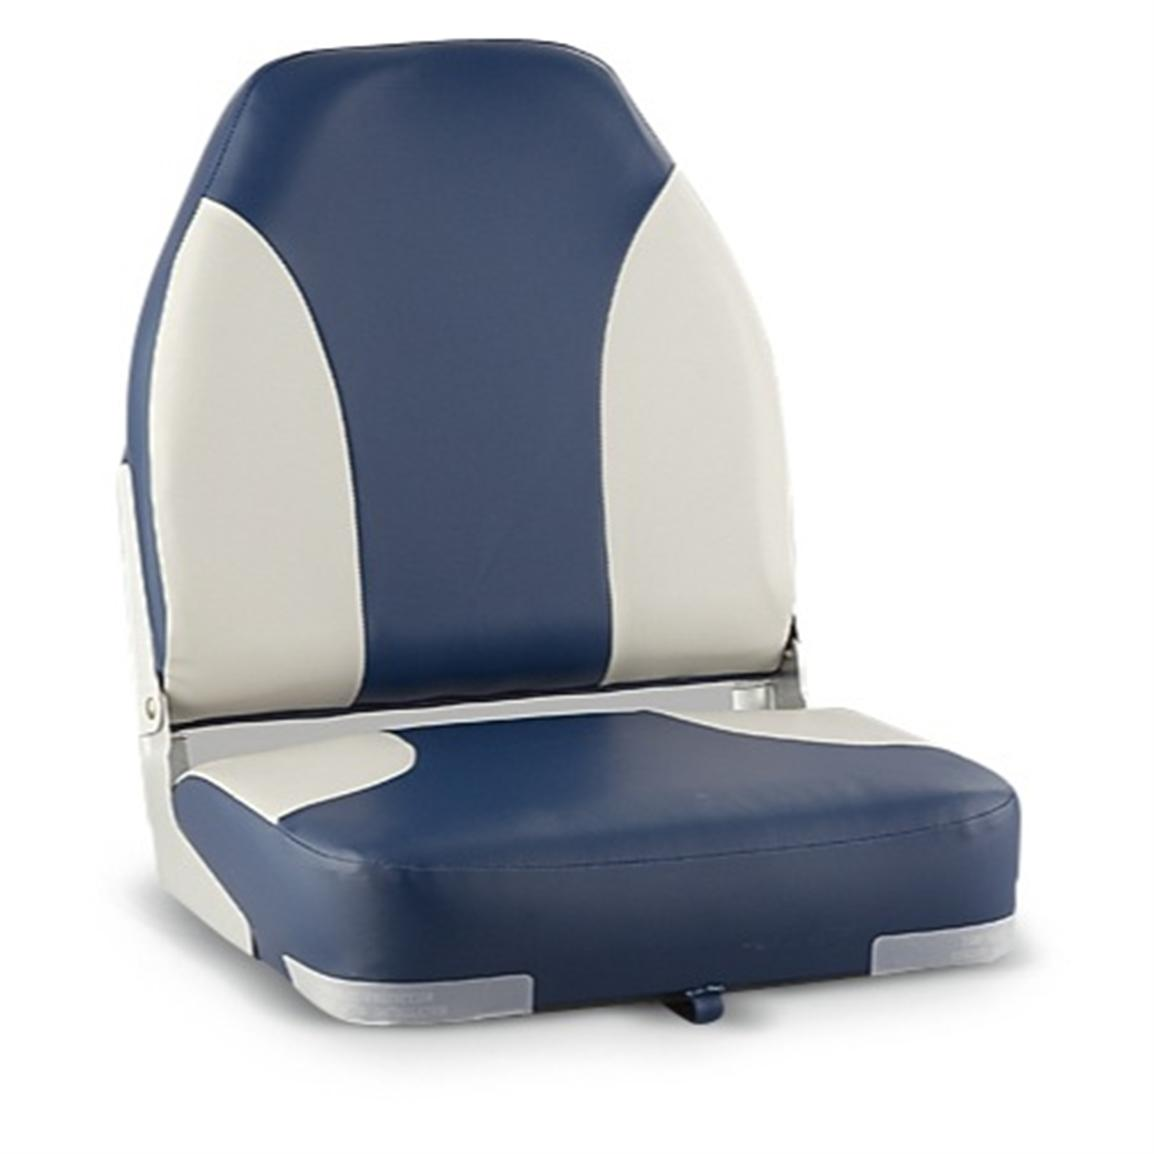 Wise® High-back Fishing Chair, Navy / Gray